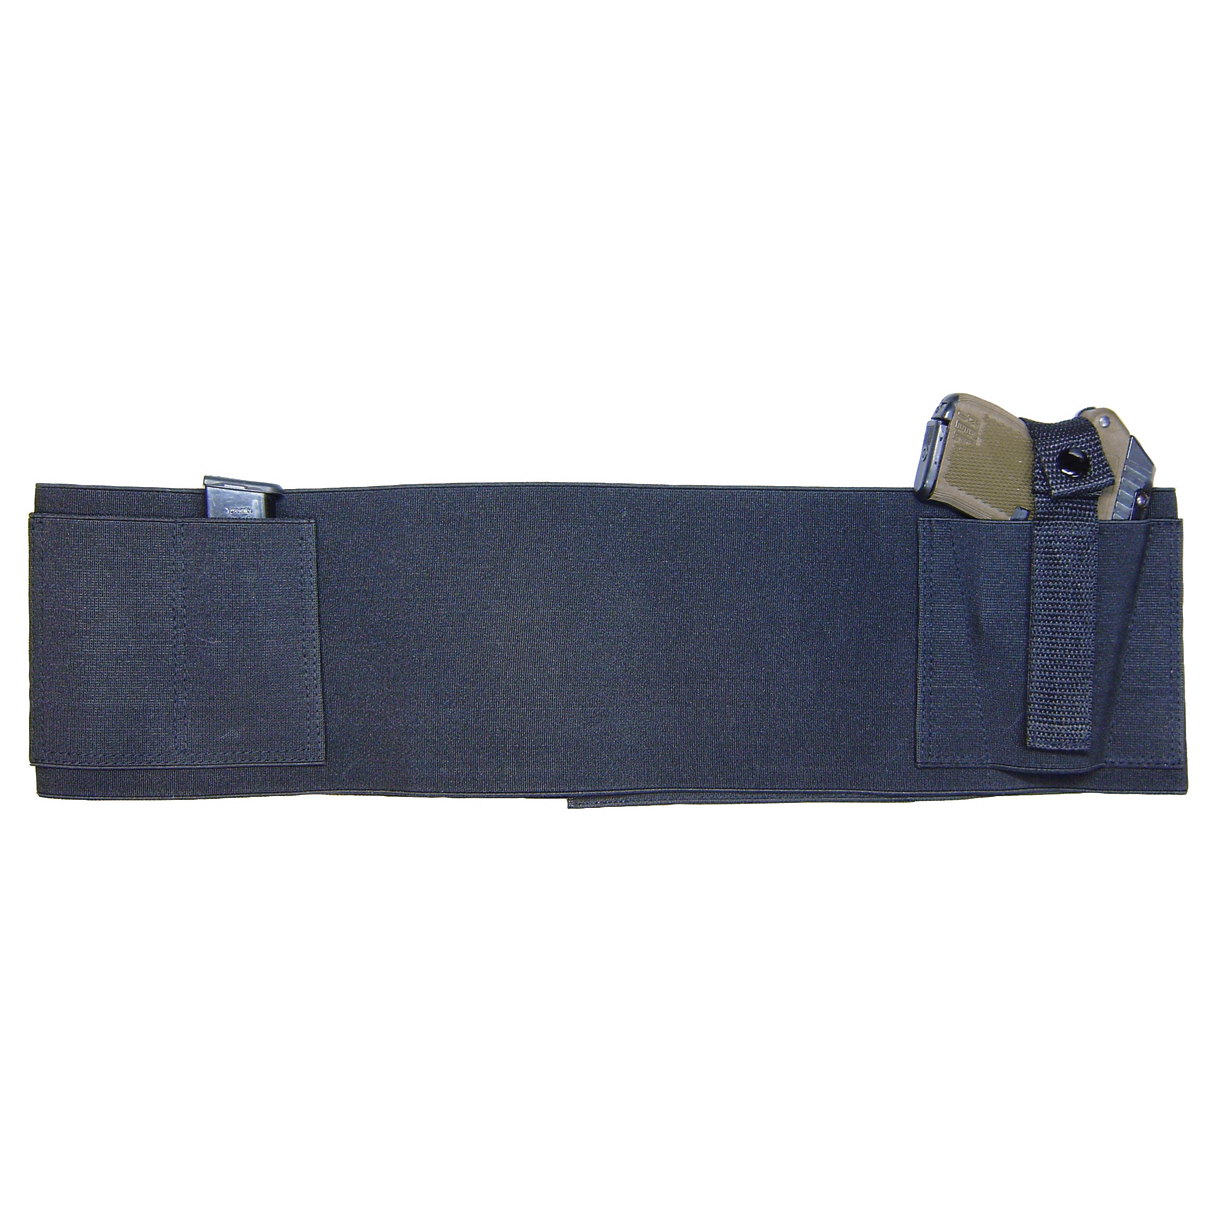 PSP Concealed Carry Belly Band Holster